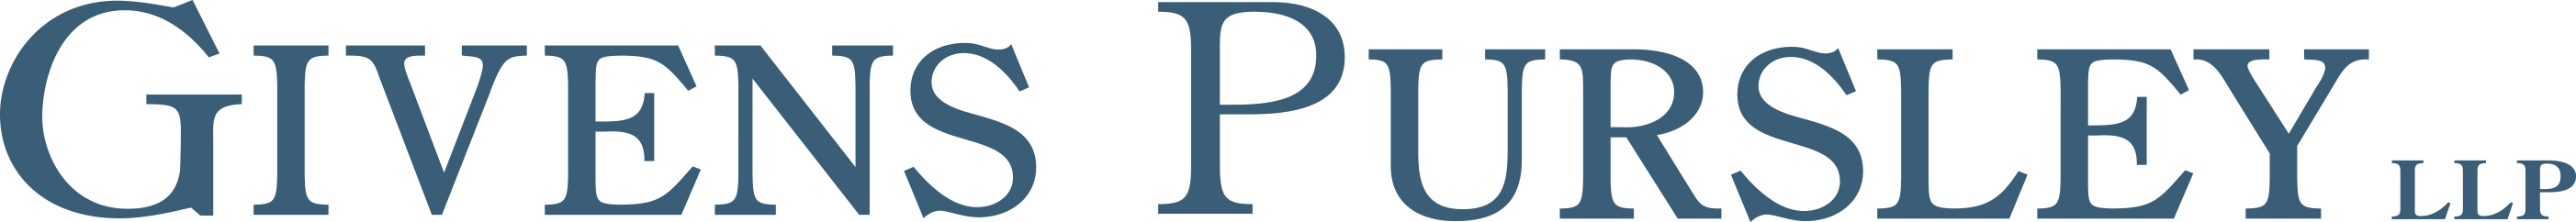 Givens Pursley LLP Logo